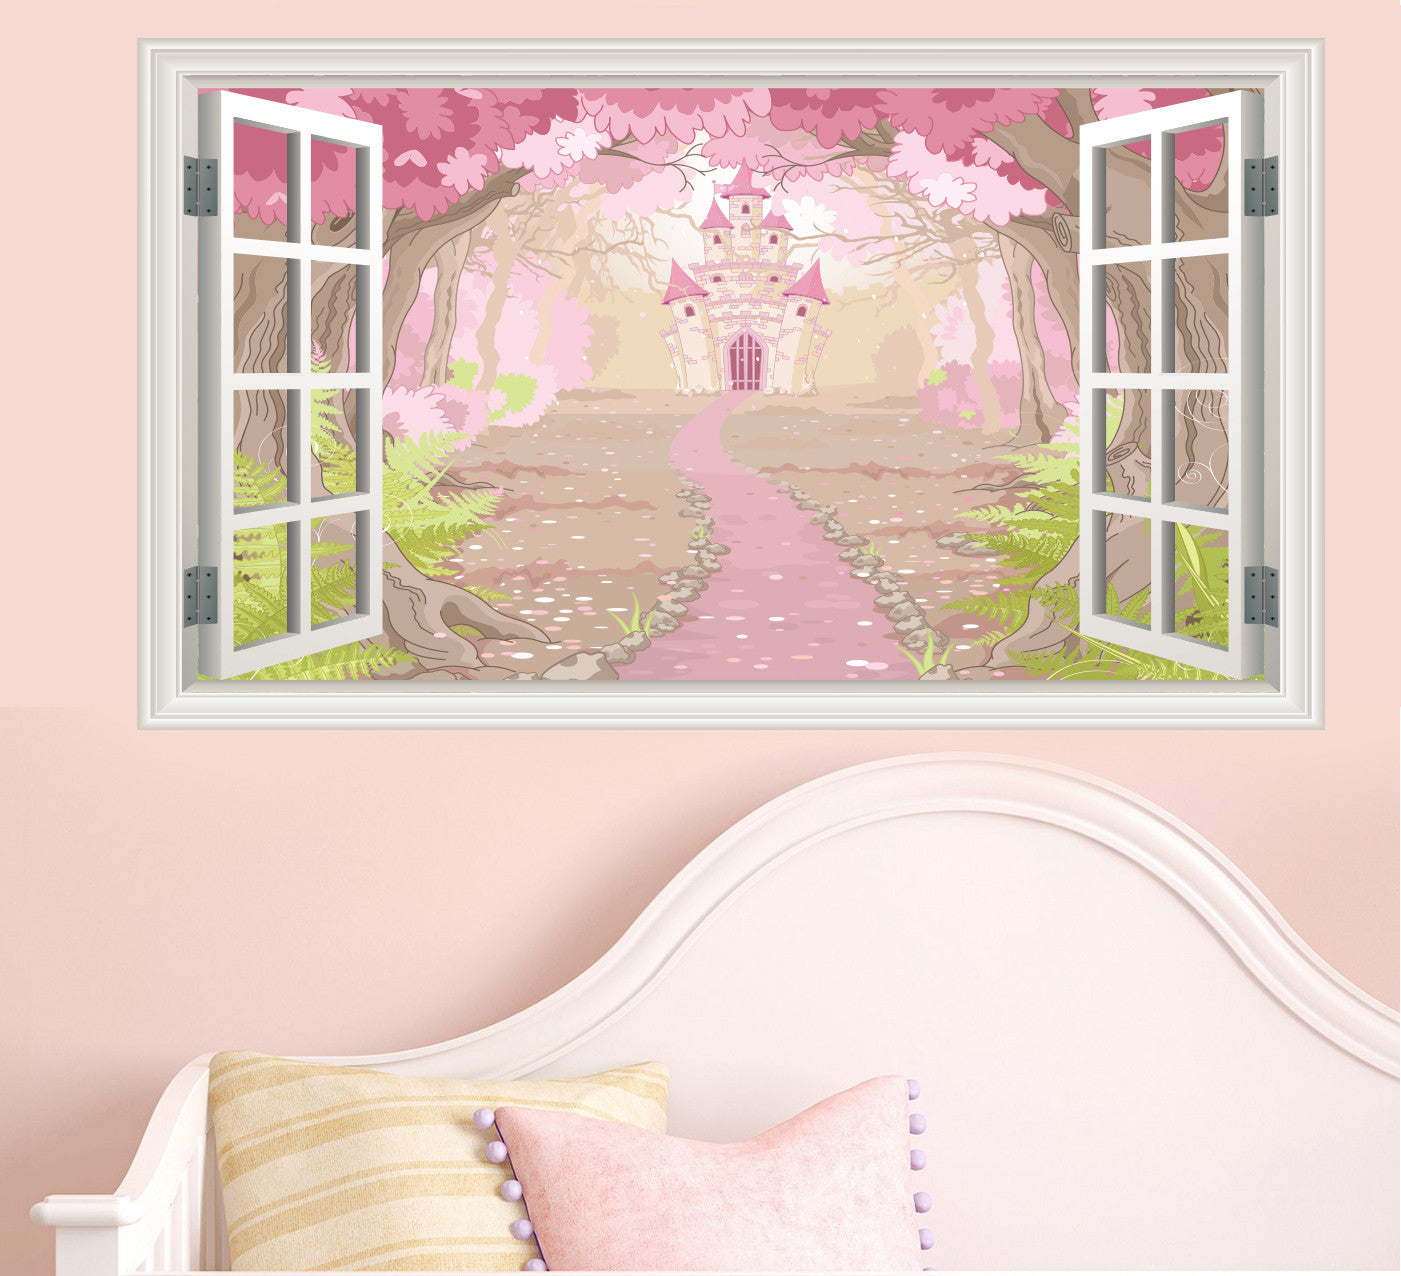 Enchanted Fairytale Castle Window Scene Wall Stickers - Childrens Bedroom  Decal Mural Transfers